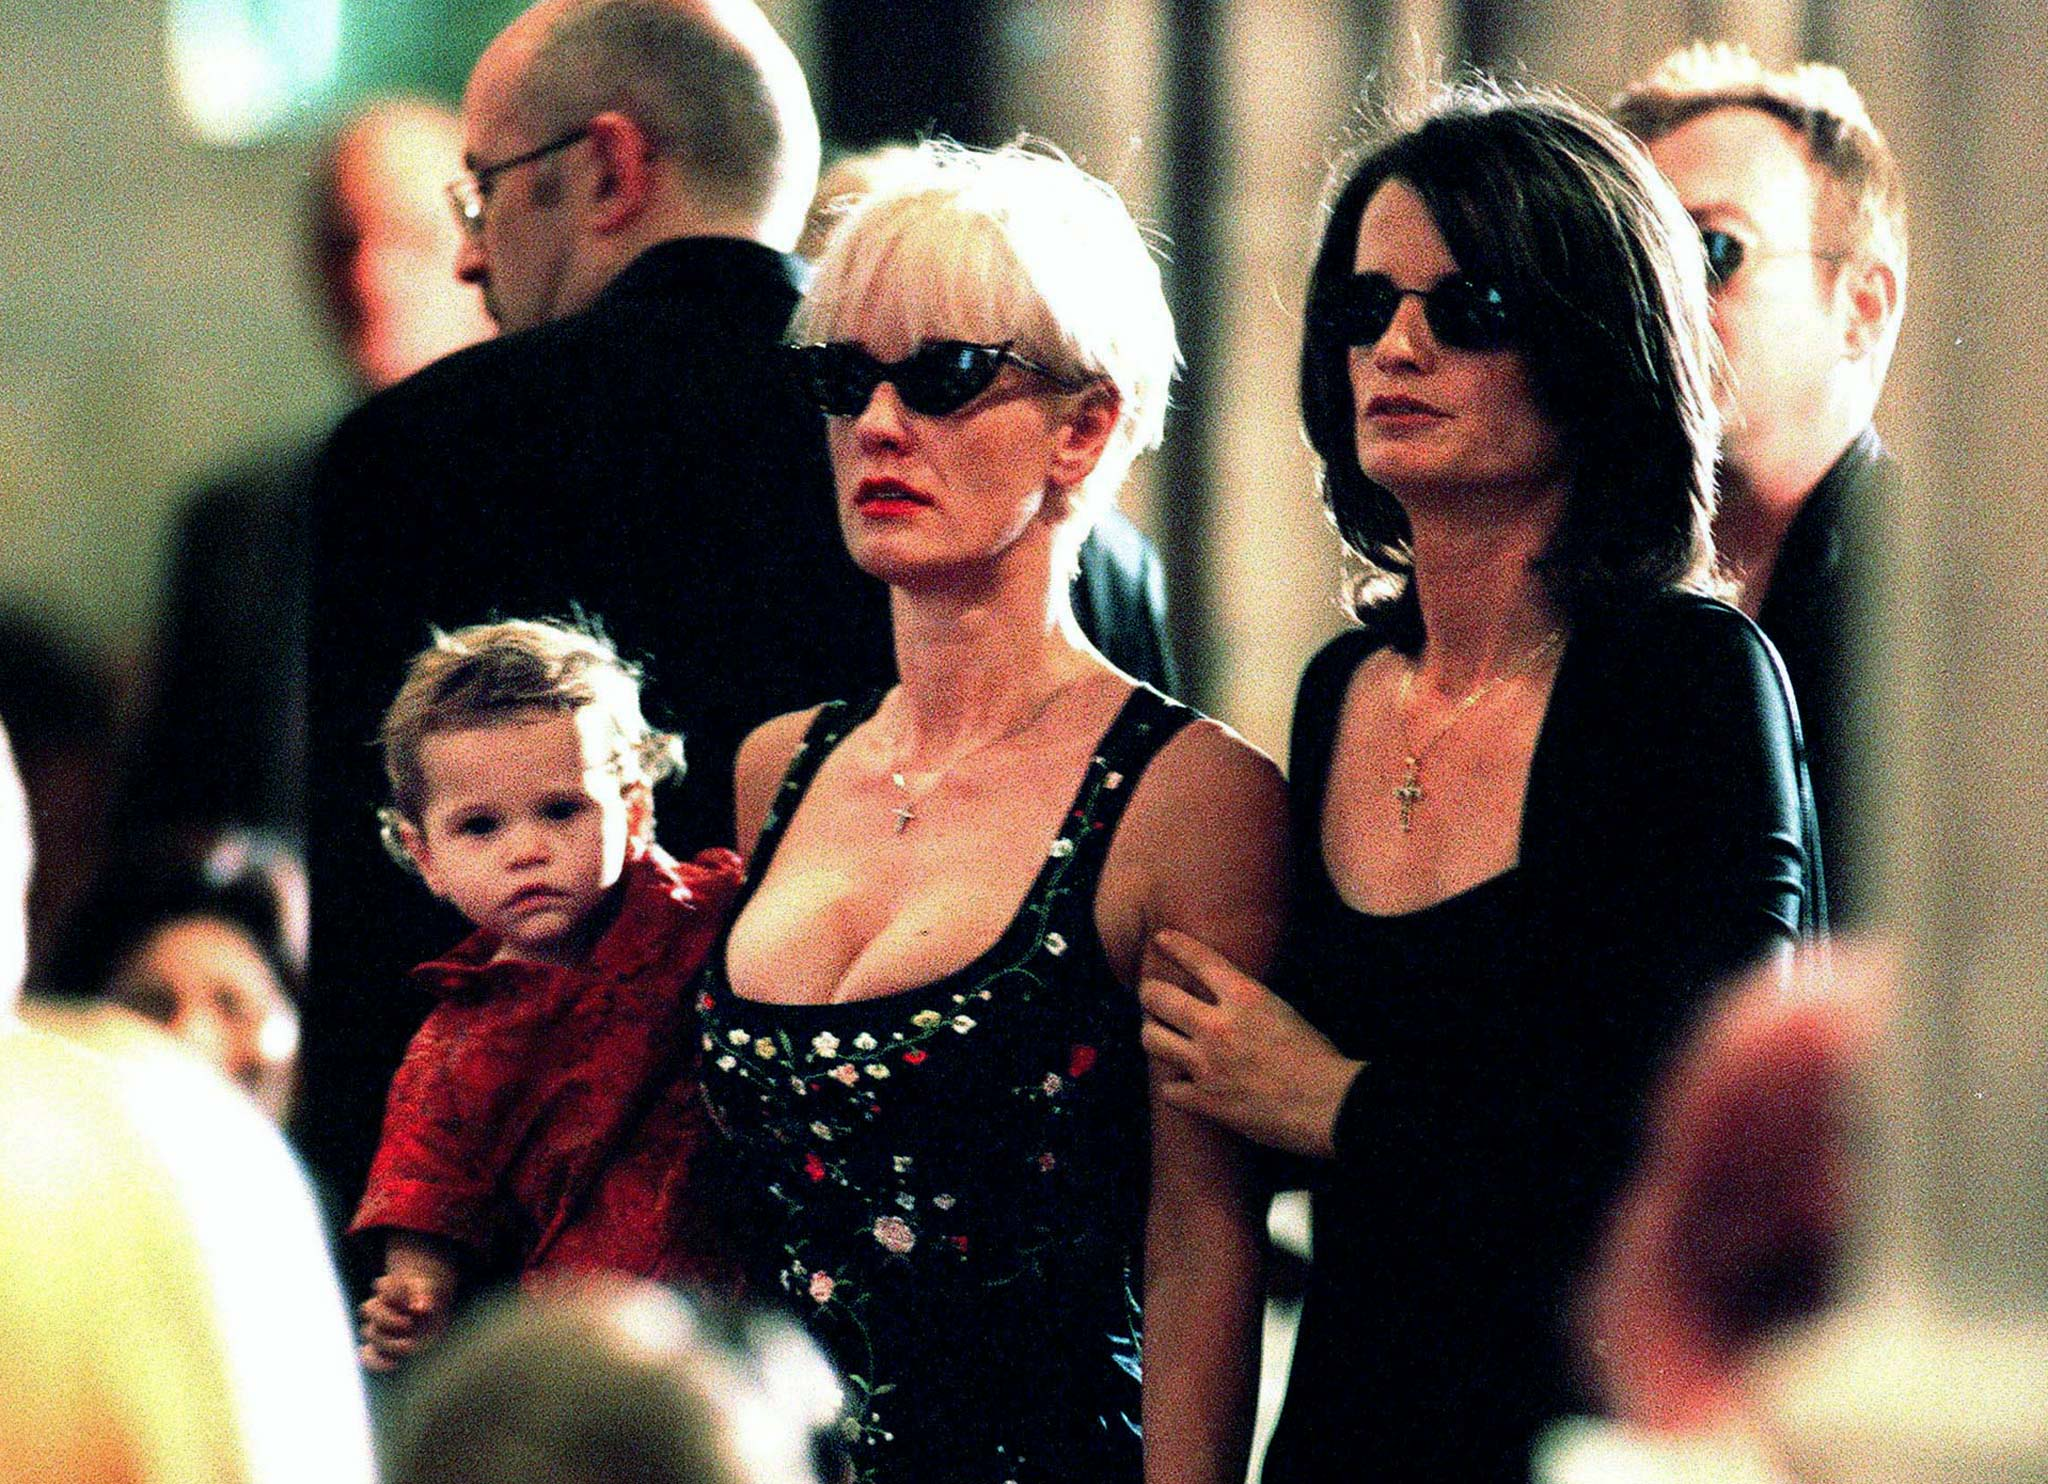 British television personality Paula Yates (C) walks into Sydney's main Anglican cathedral with her daughter Heavenly Hiraani Tiger Lily (L) and a friend during the funeral service for her partner, INXS rock star Michael Hutchence November 27. Thousands of fans watched the emotional service outside on large video screens, whilst relatives, friends and the other band members of INXS crowded inside.    ? QUALITY DOCUMENT - PBEAHUMRBEK